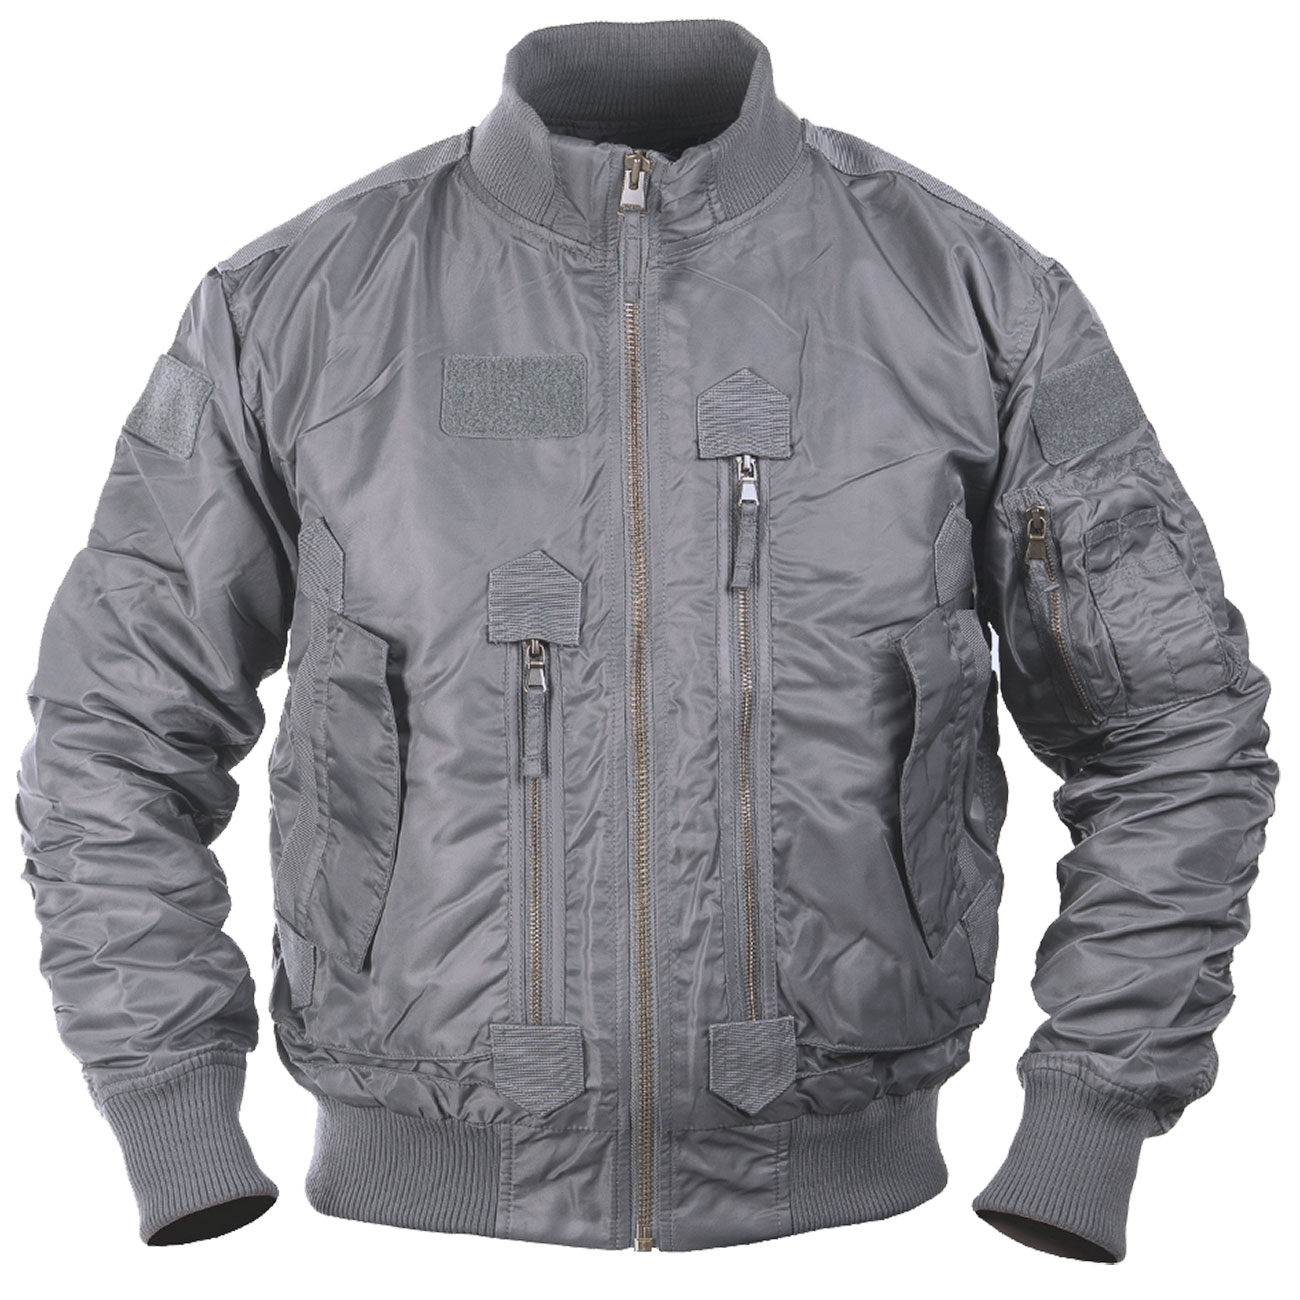 Mil-Tec US Tactical Fliegerjacke urban grey 0